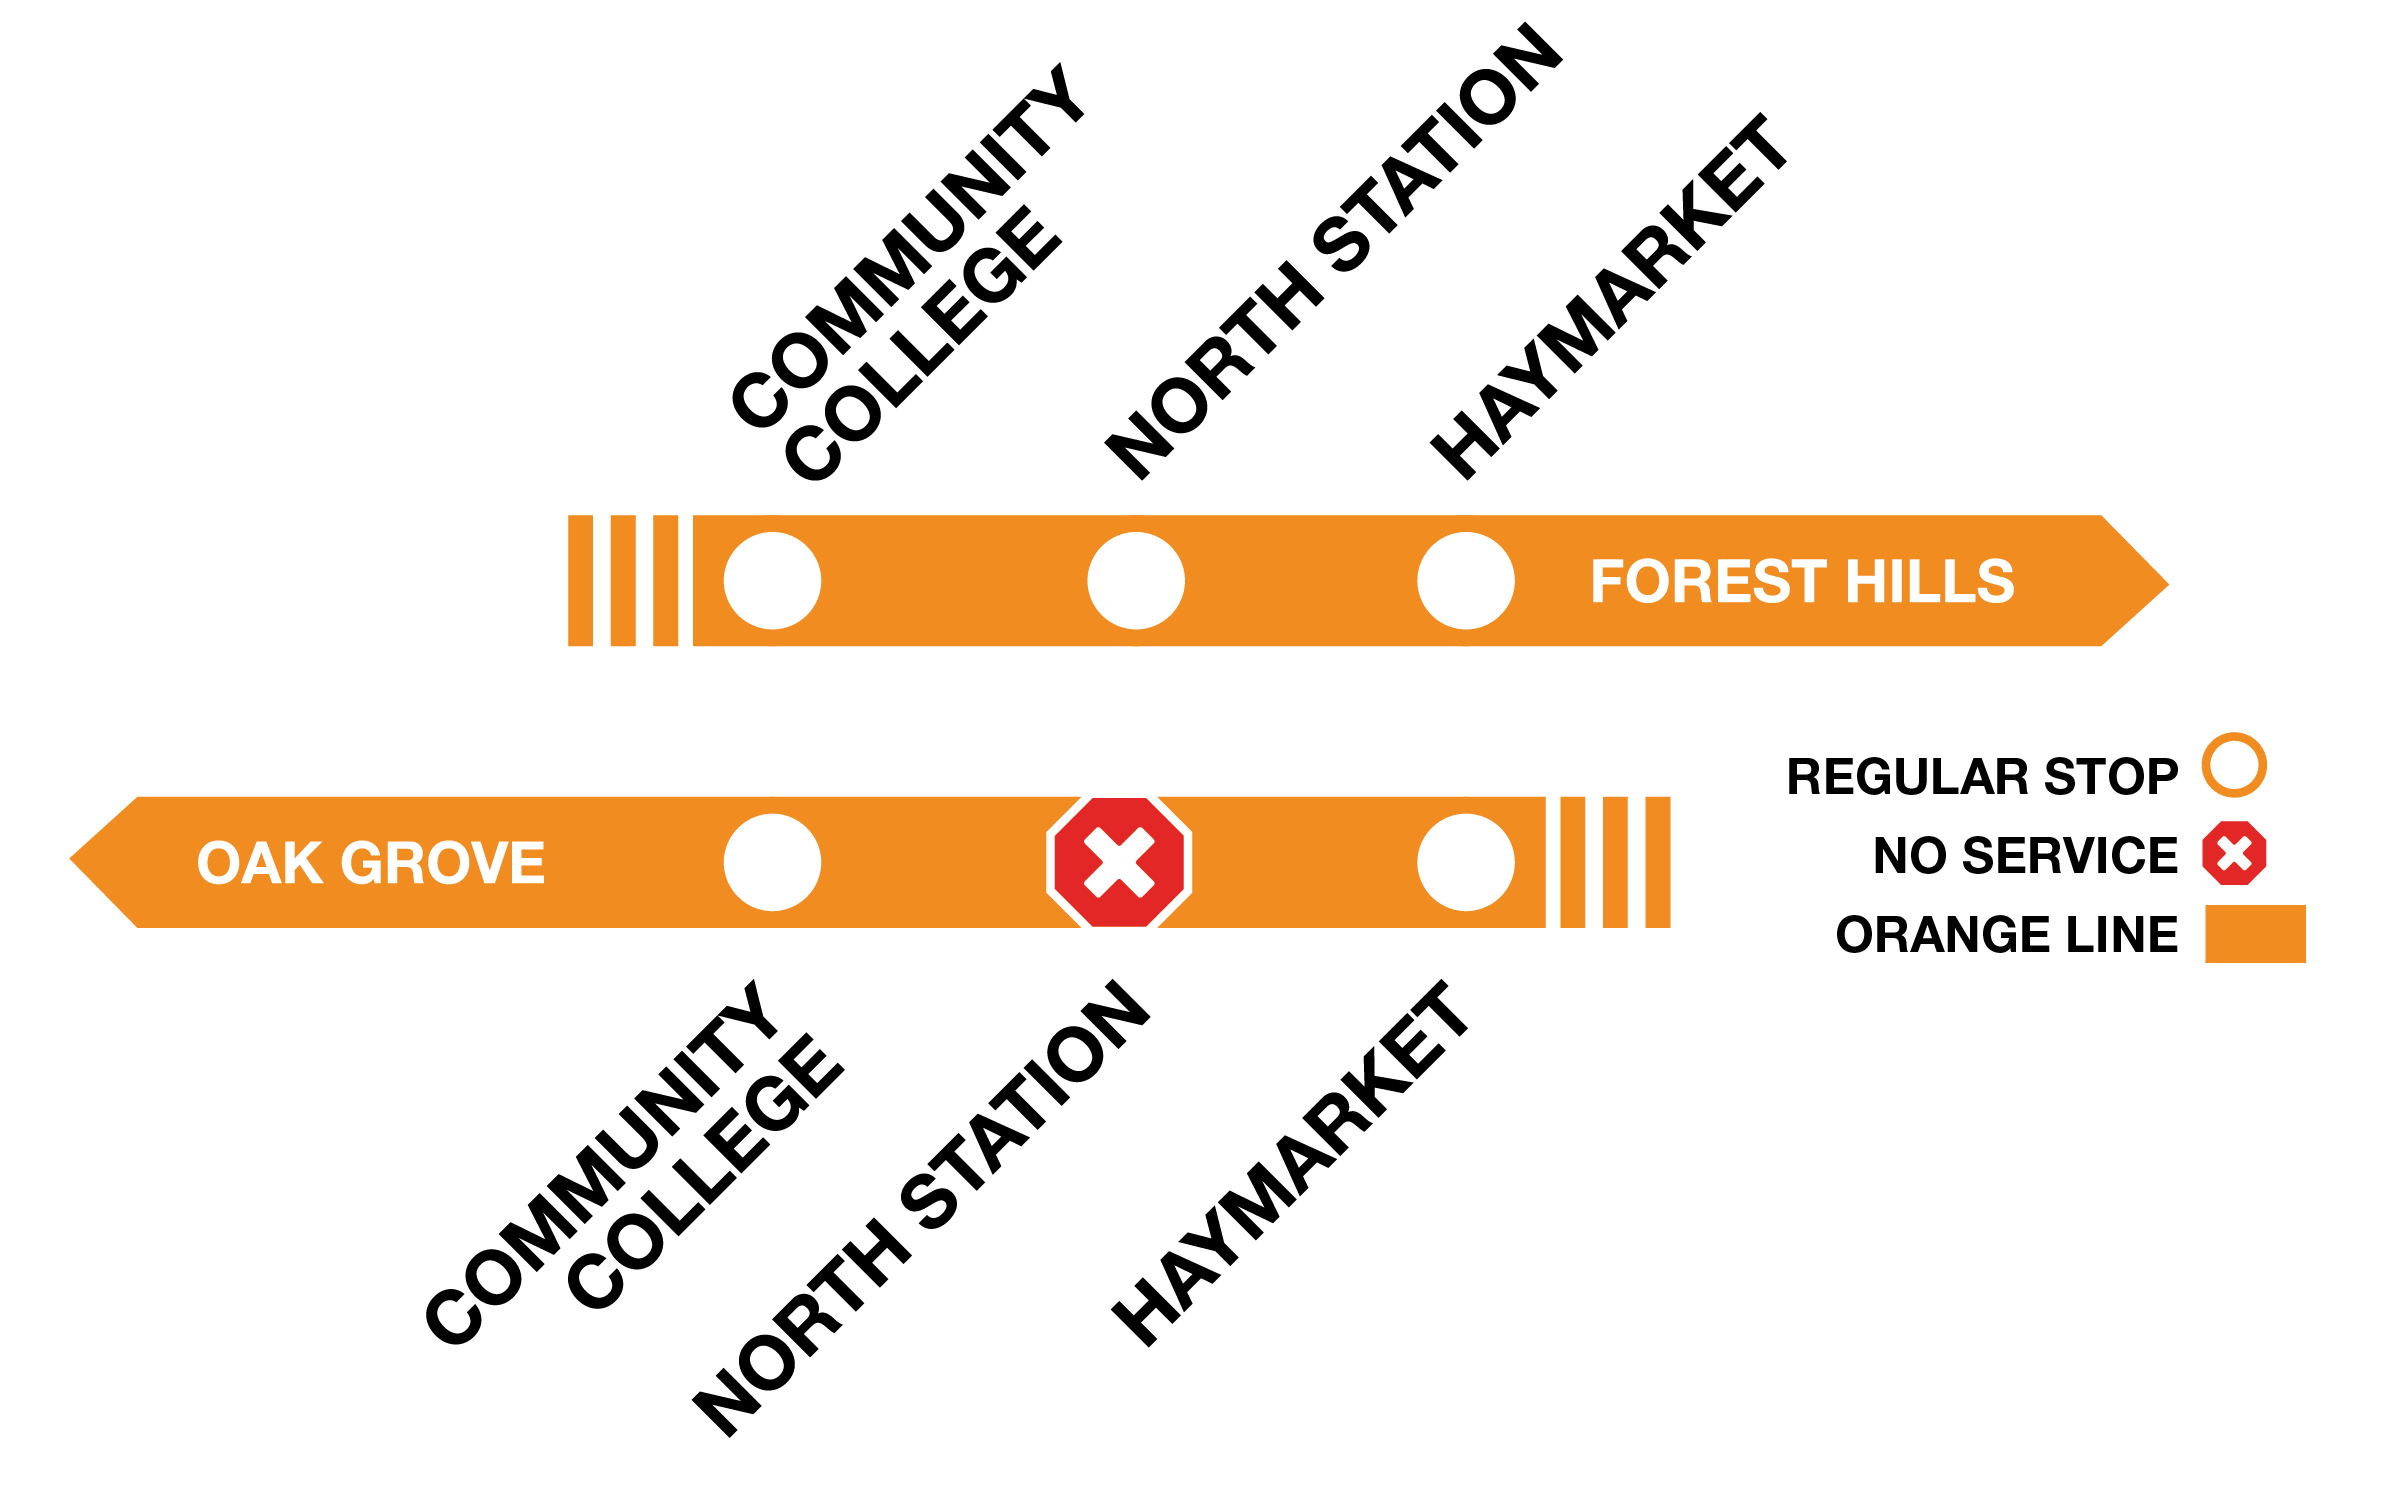 Orange Line graphic showing outbound trains to Oak Grove will bypass North Station.